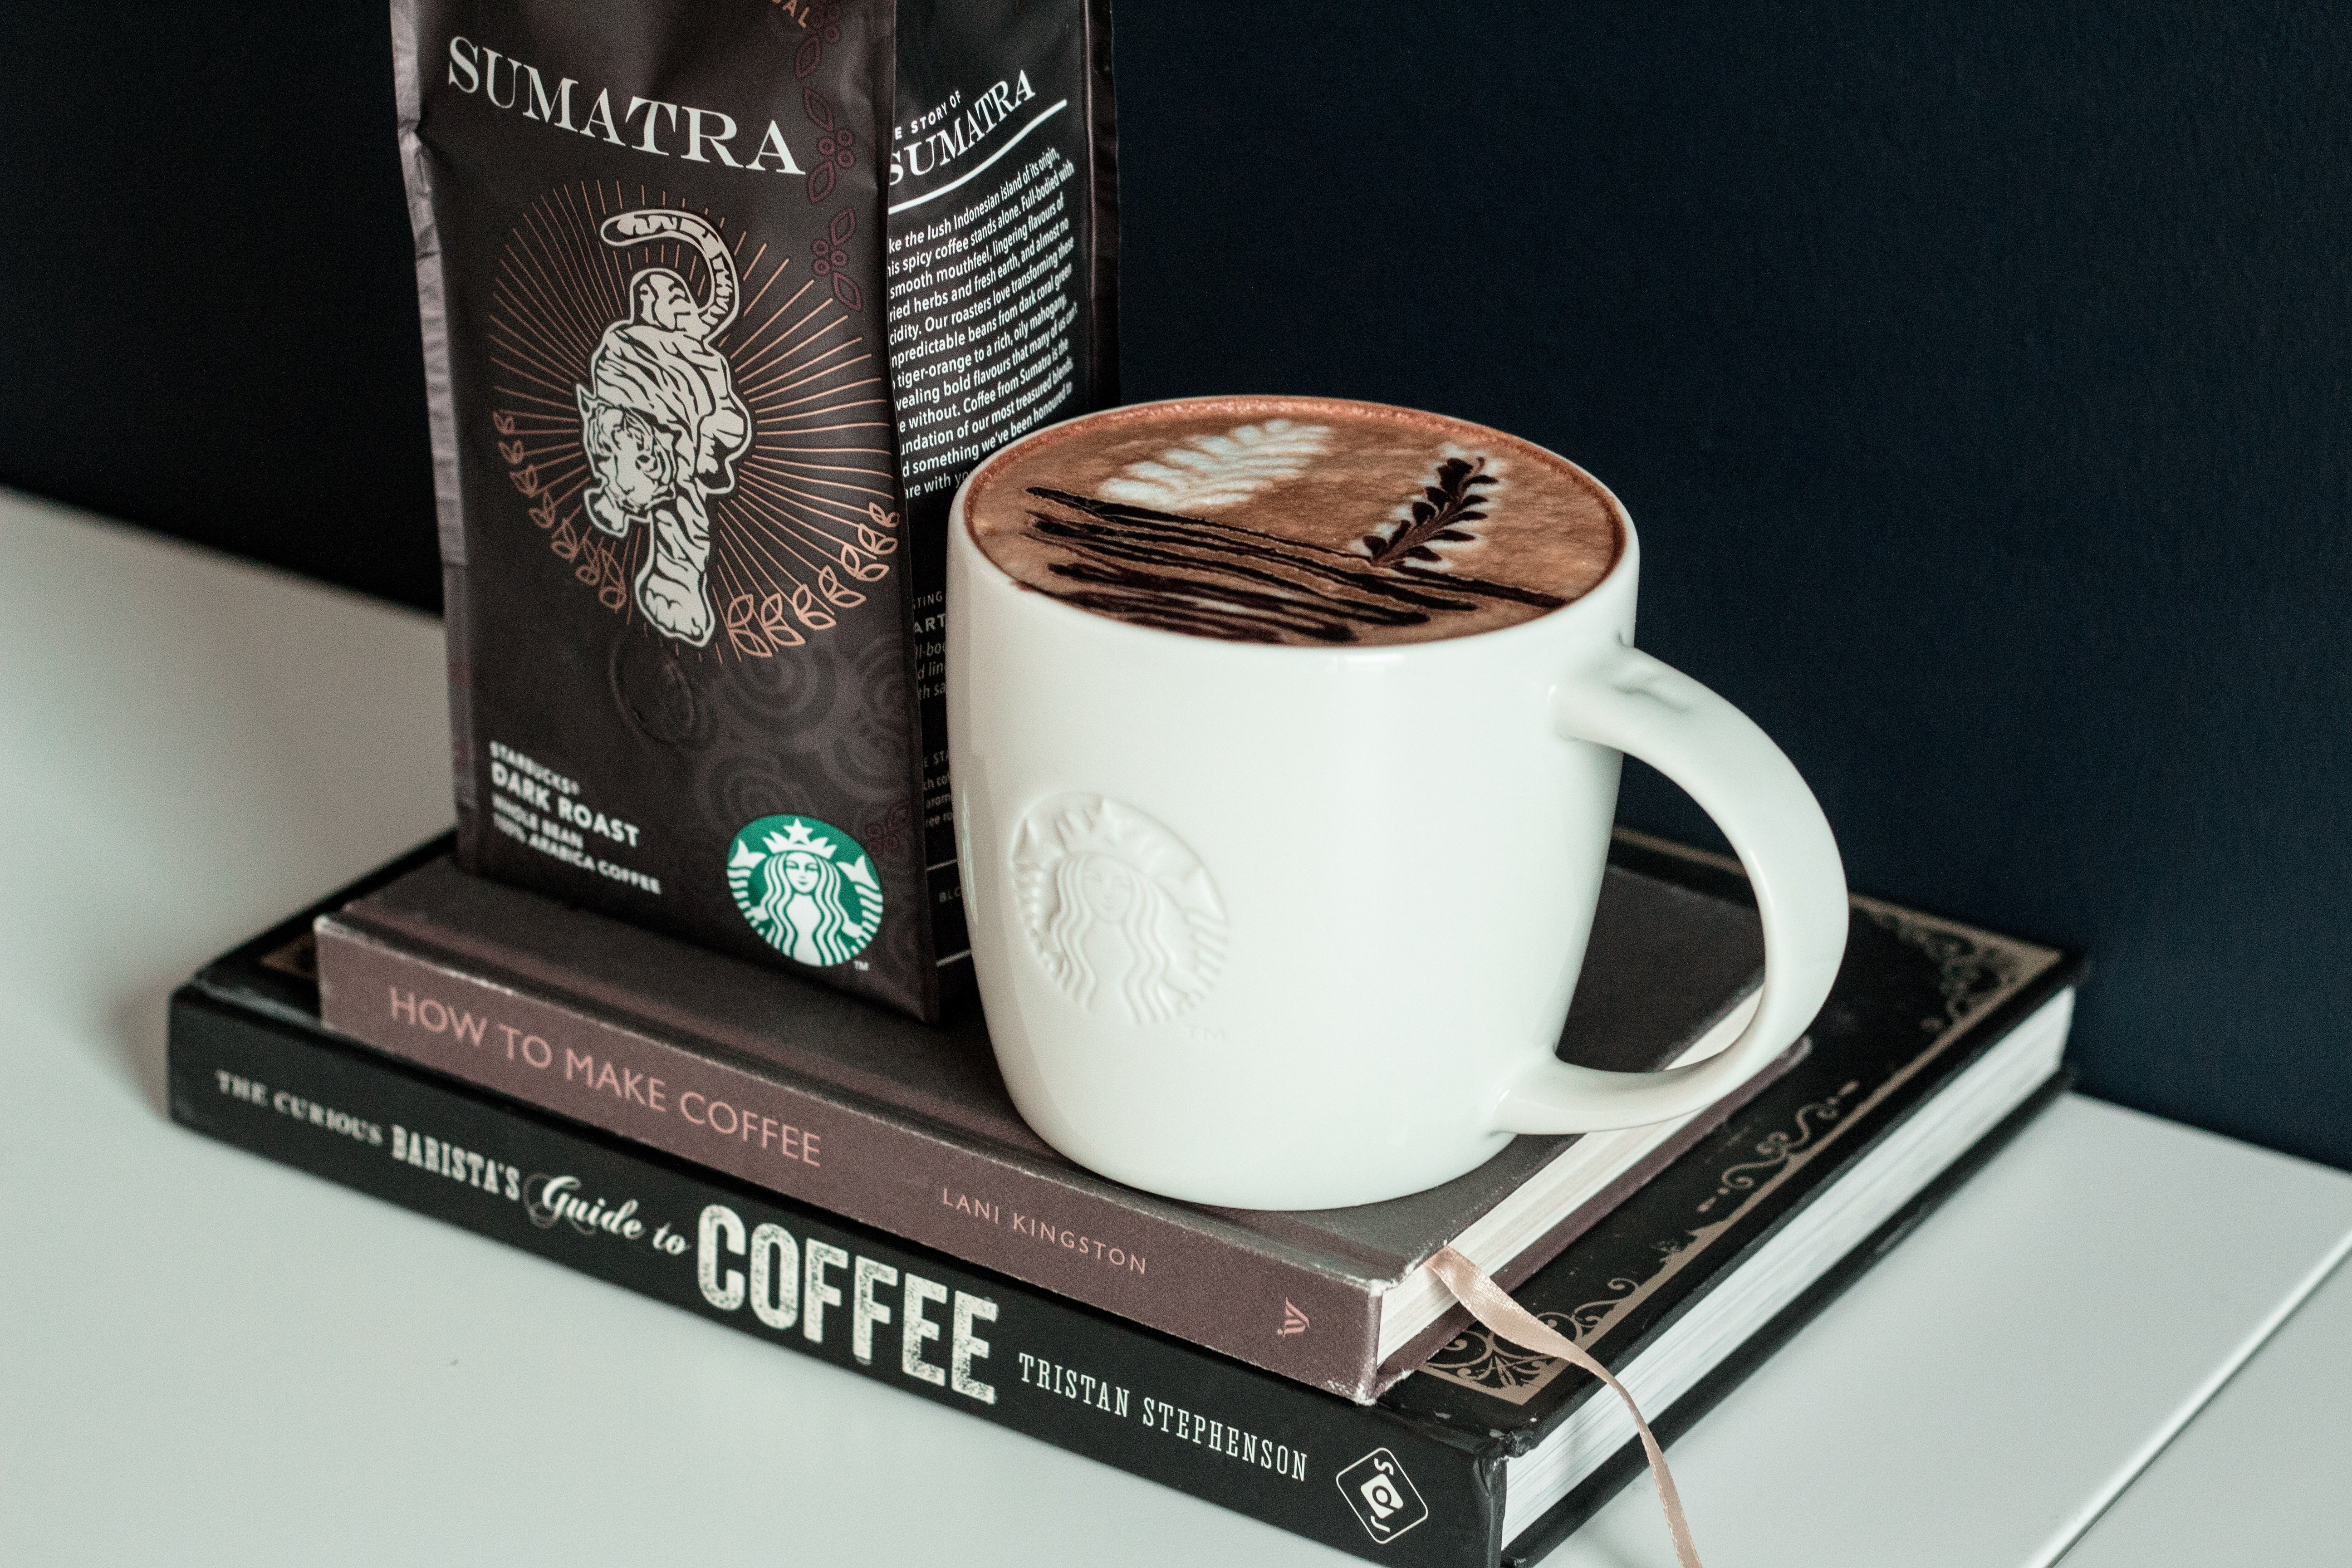 Crowdsourced brand photography from FOAP visual content creators by Starbucks.